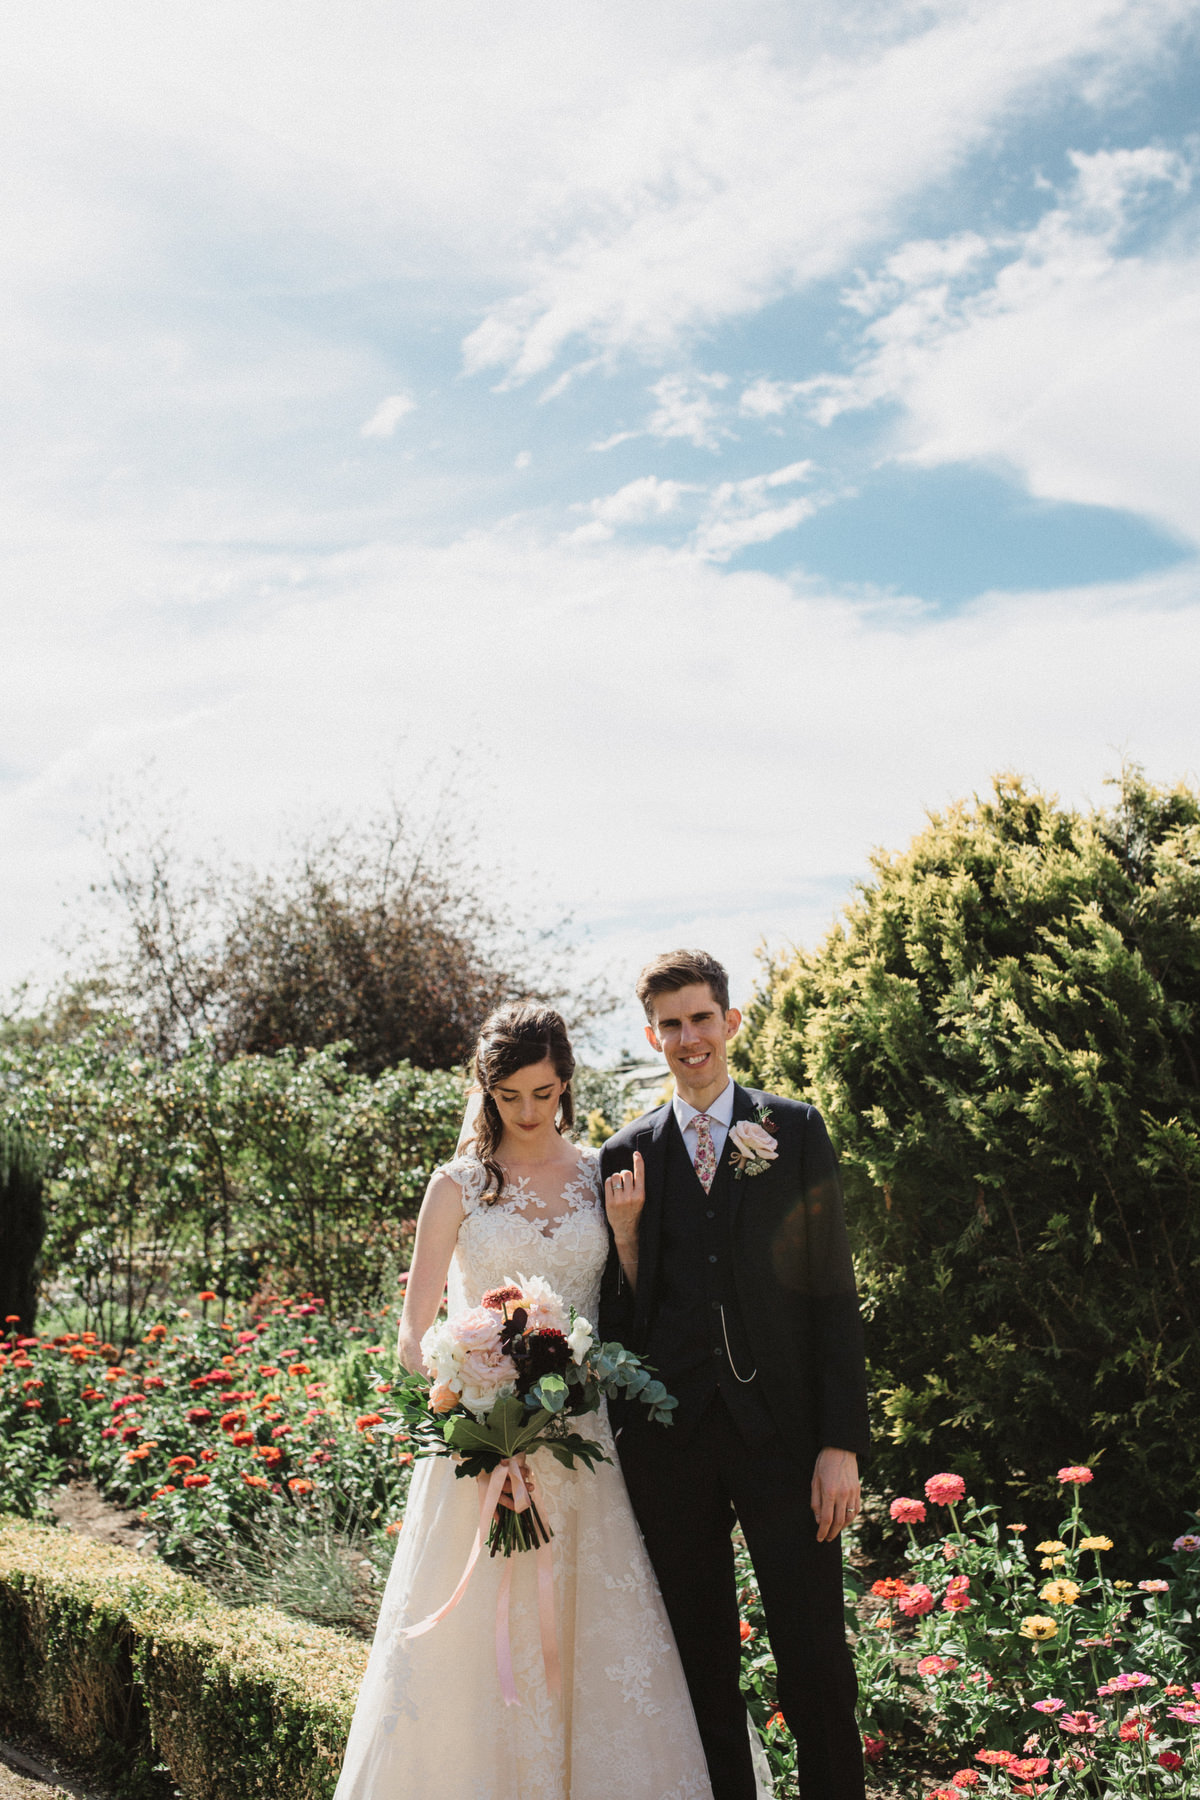 bride and groom portraits at HAUGHLEY PARK BARN WEDDING PHOTOGRAPHY